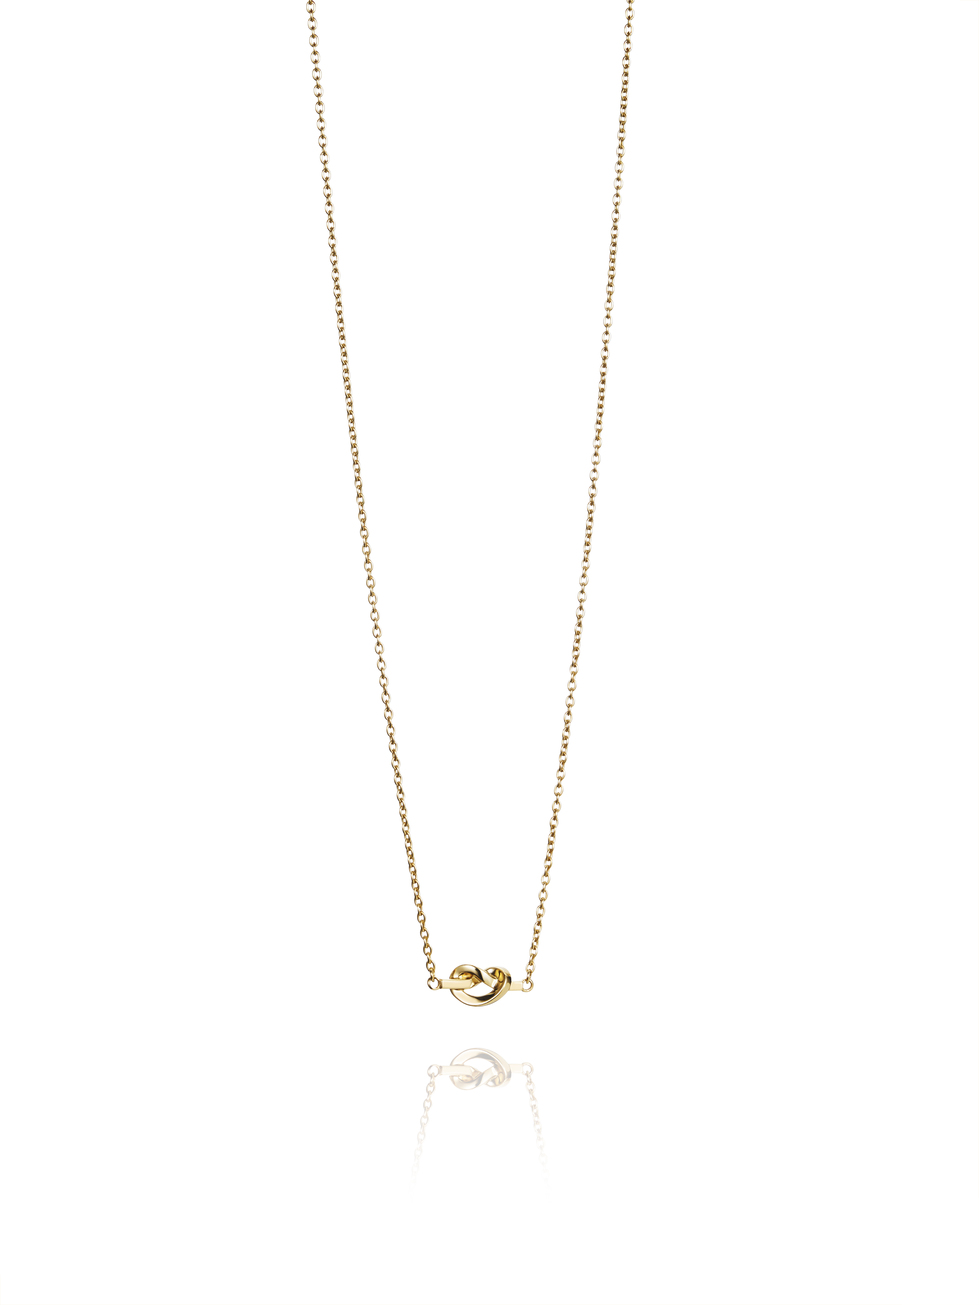 Love_Knot_Necklace_10-101-00966(2)